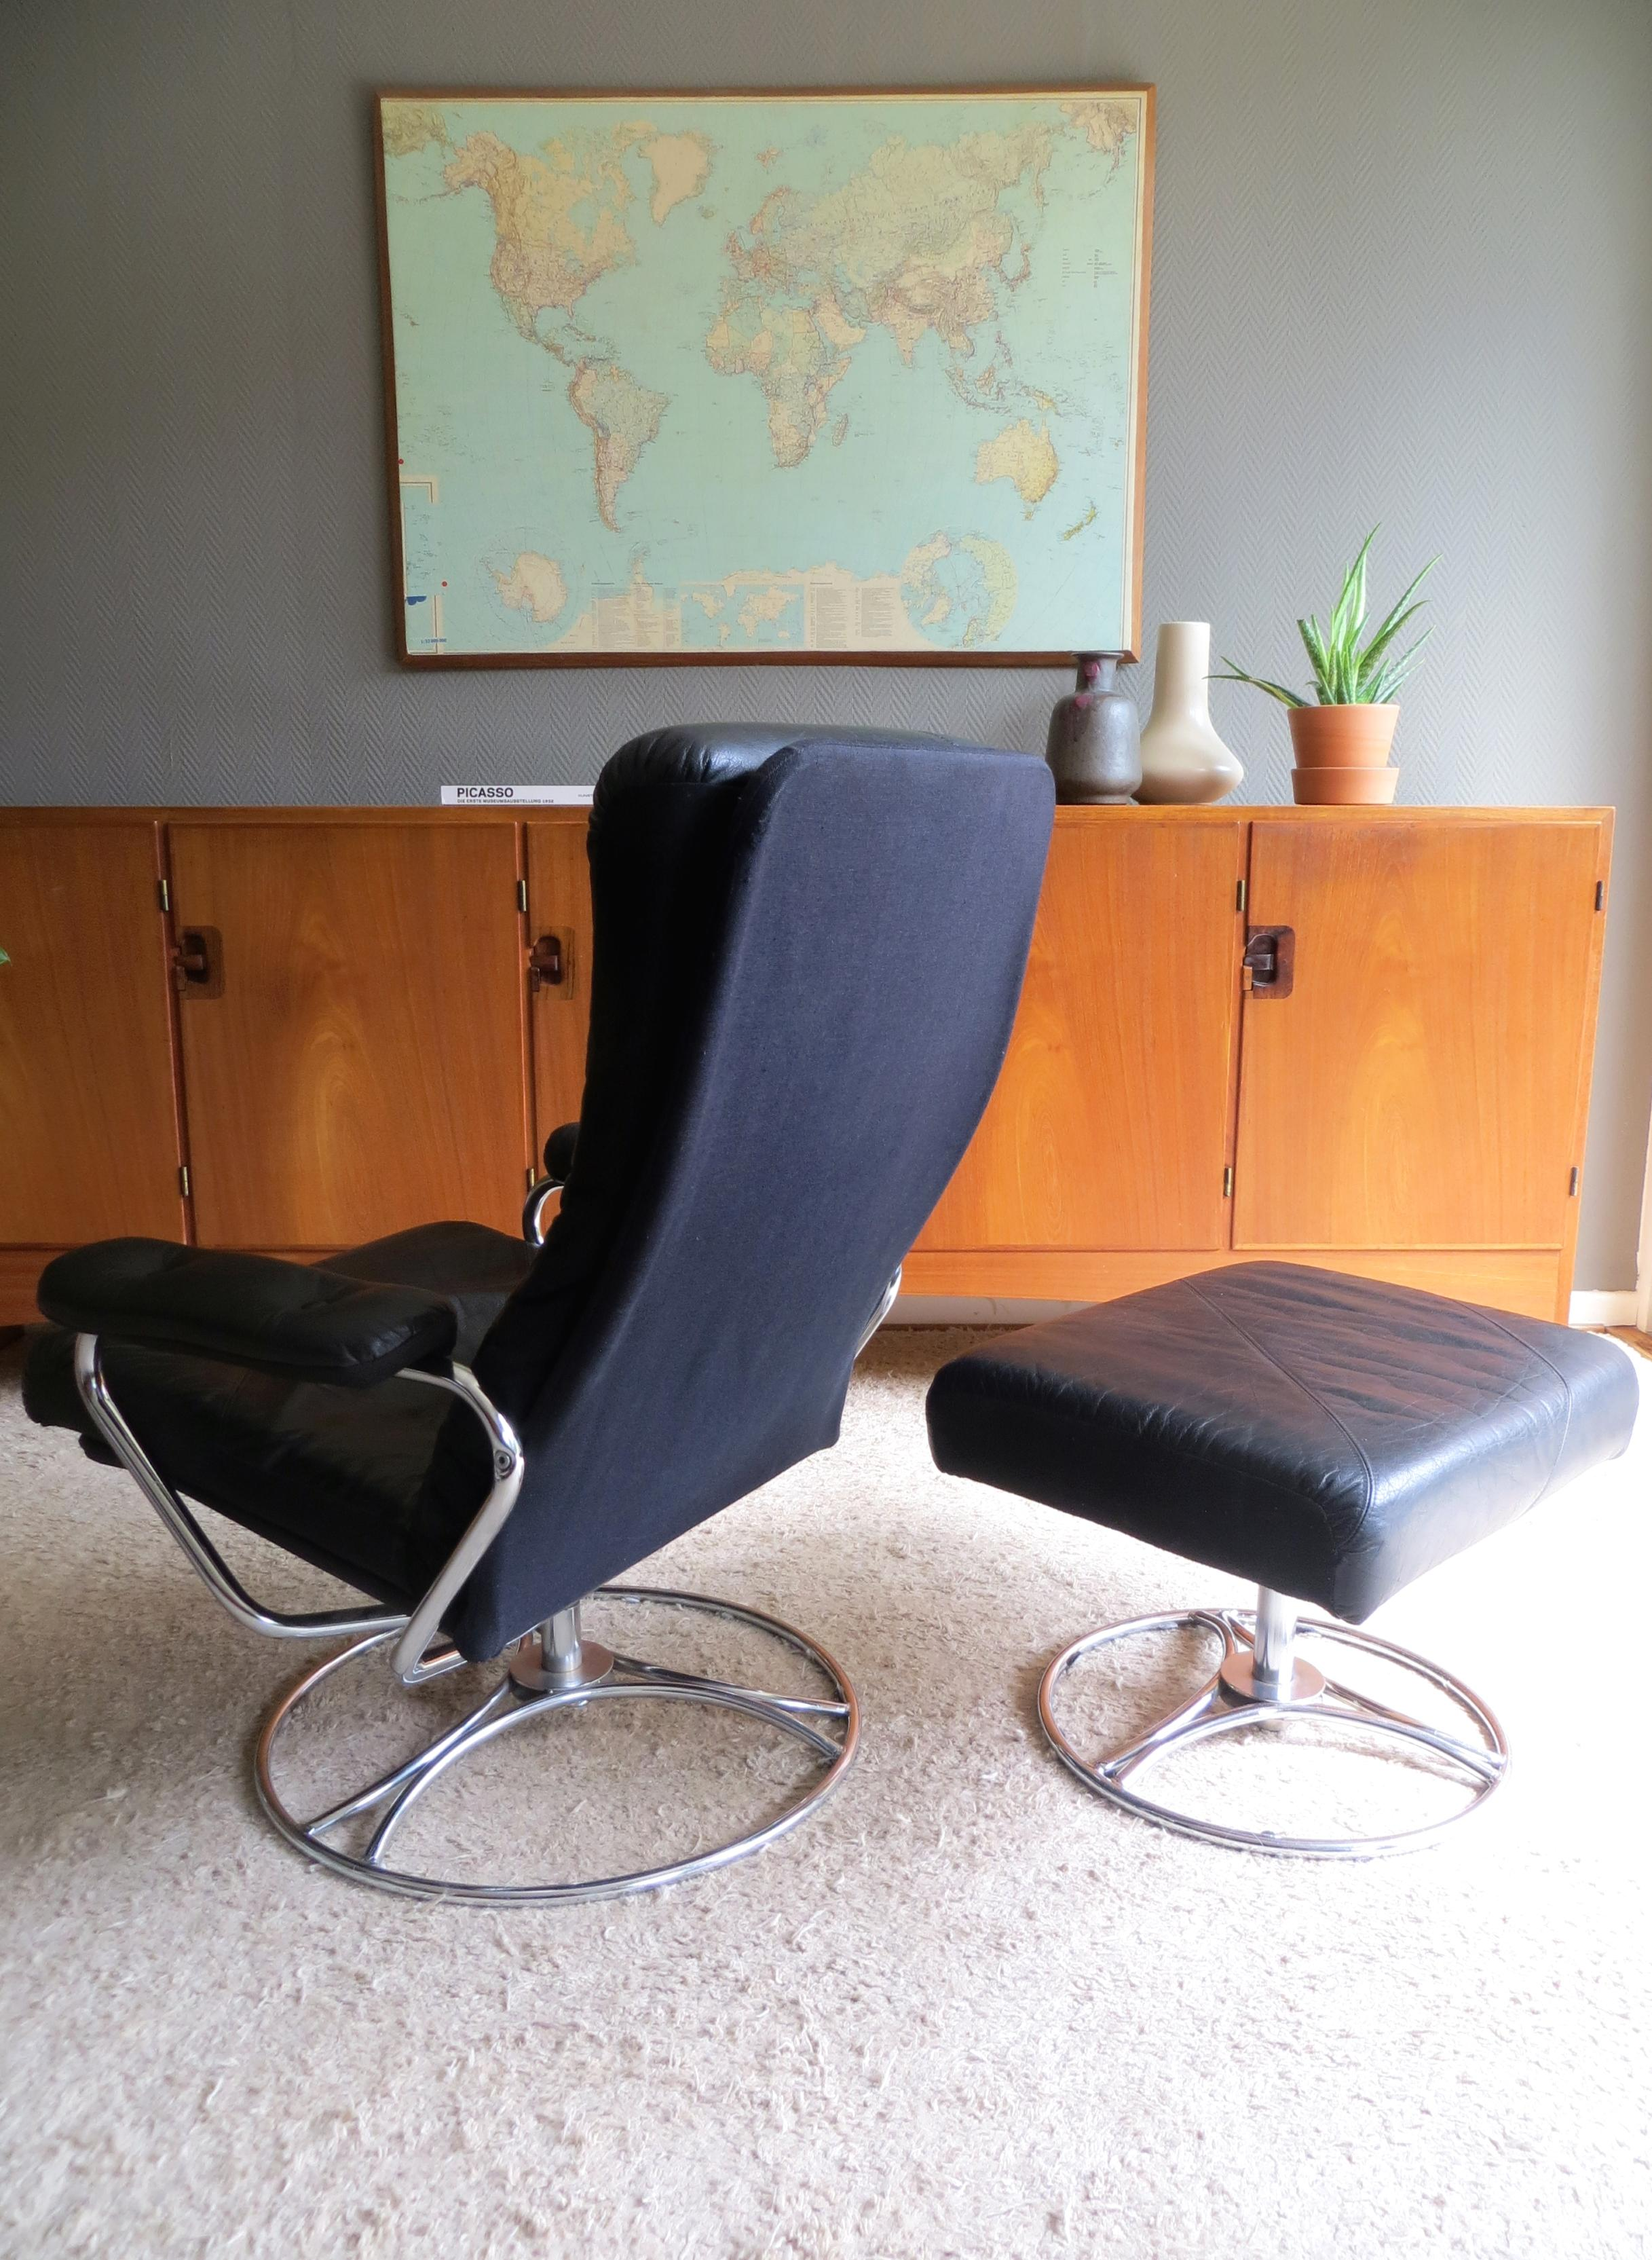 Stressless Hamburg Midcentury Ekornes Stressless Reclining Leather Chrome Lounge Chair Ottoman